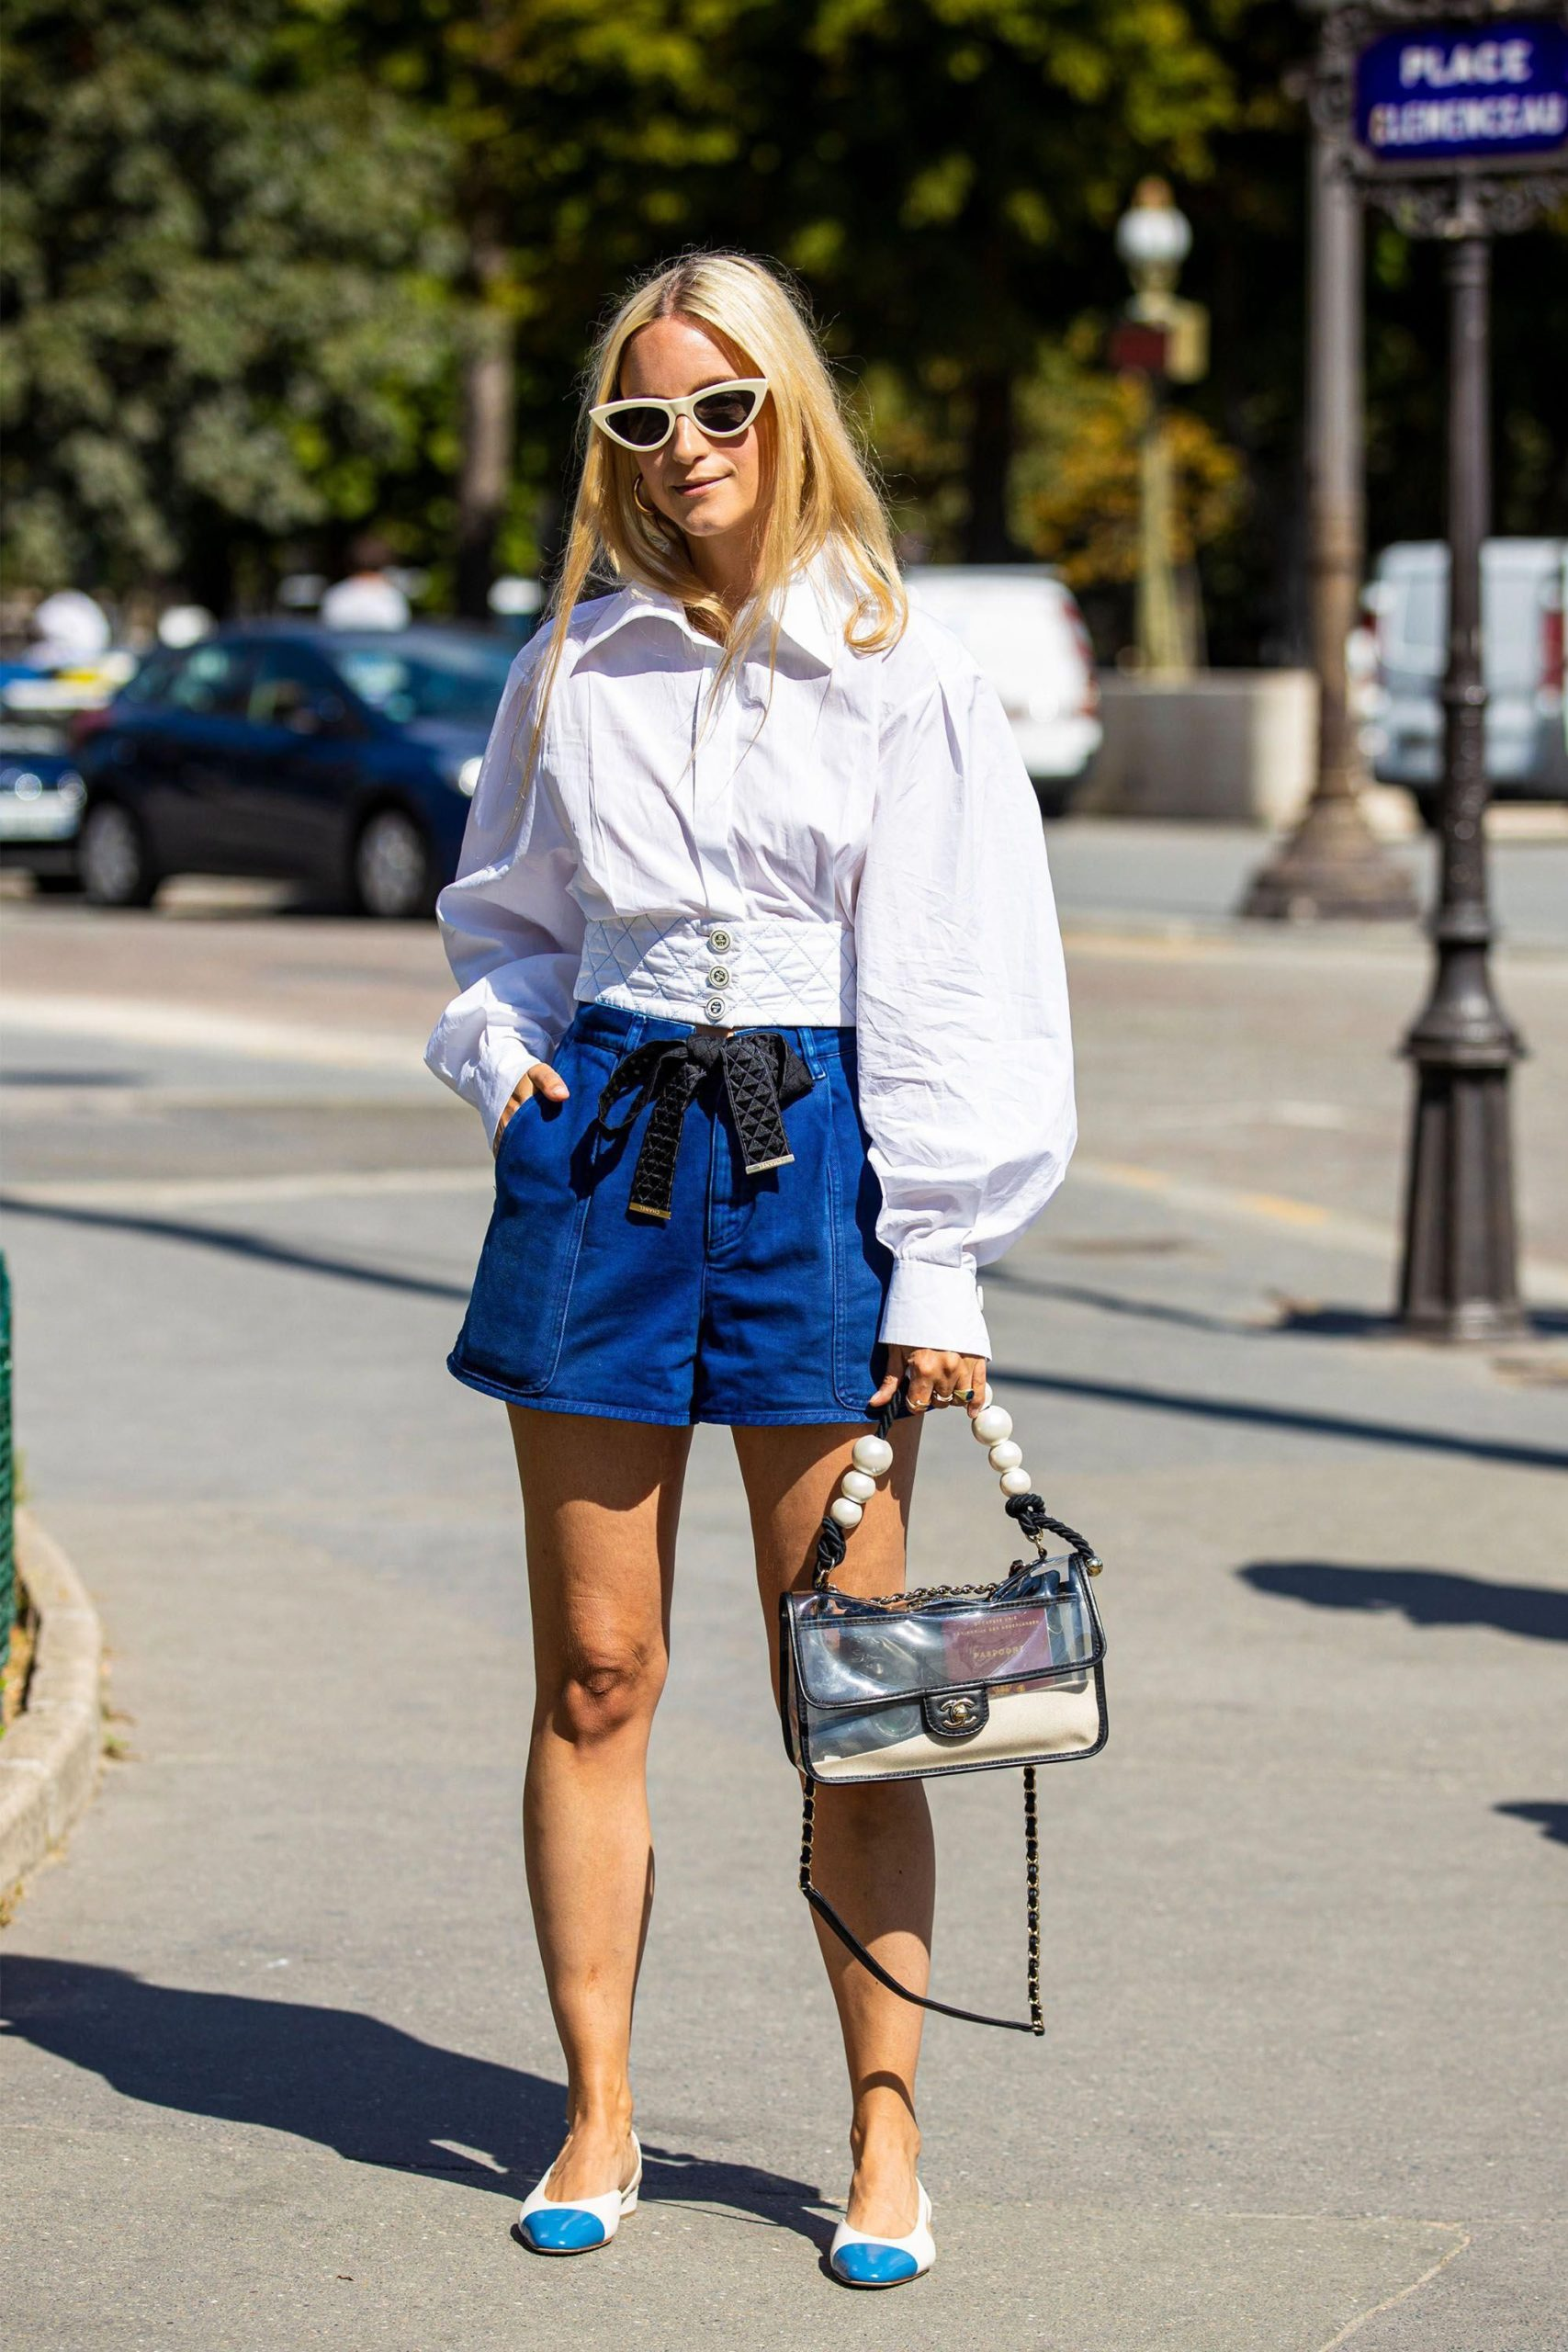 How To Wear Today's Most Popular Fashion Trends